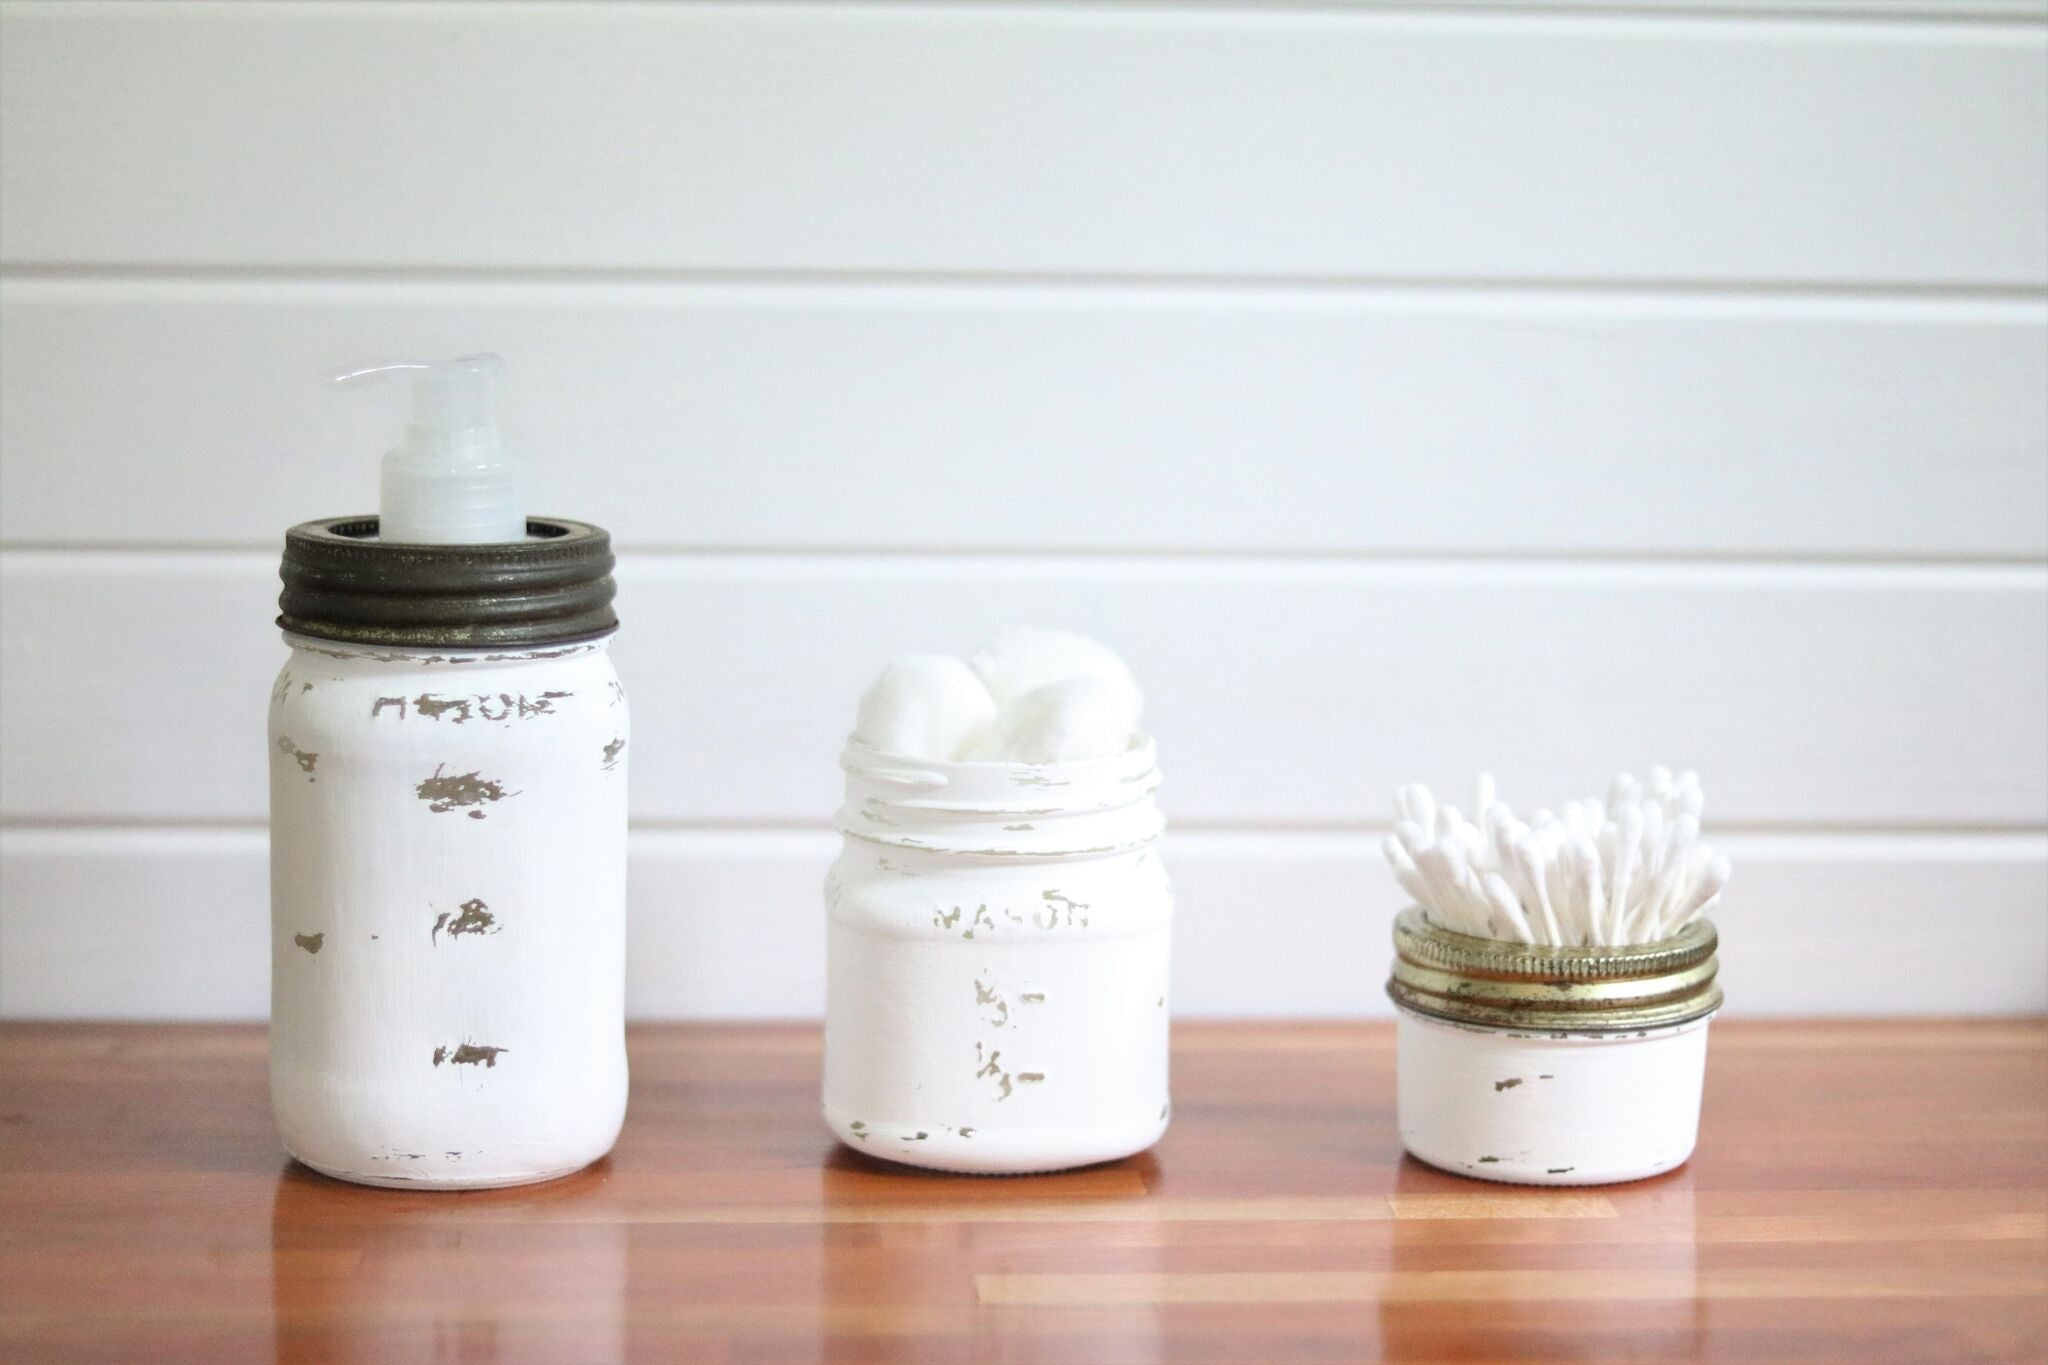 This craft idea can work with all sizes of Antique Candle Works Mason jar  candles! Get them all cleaned out and paint the jars using your favorite  chalk ...